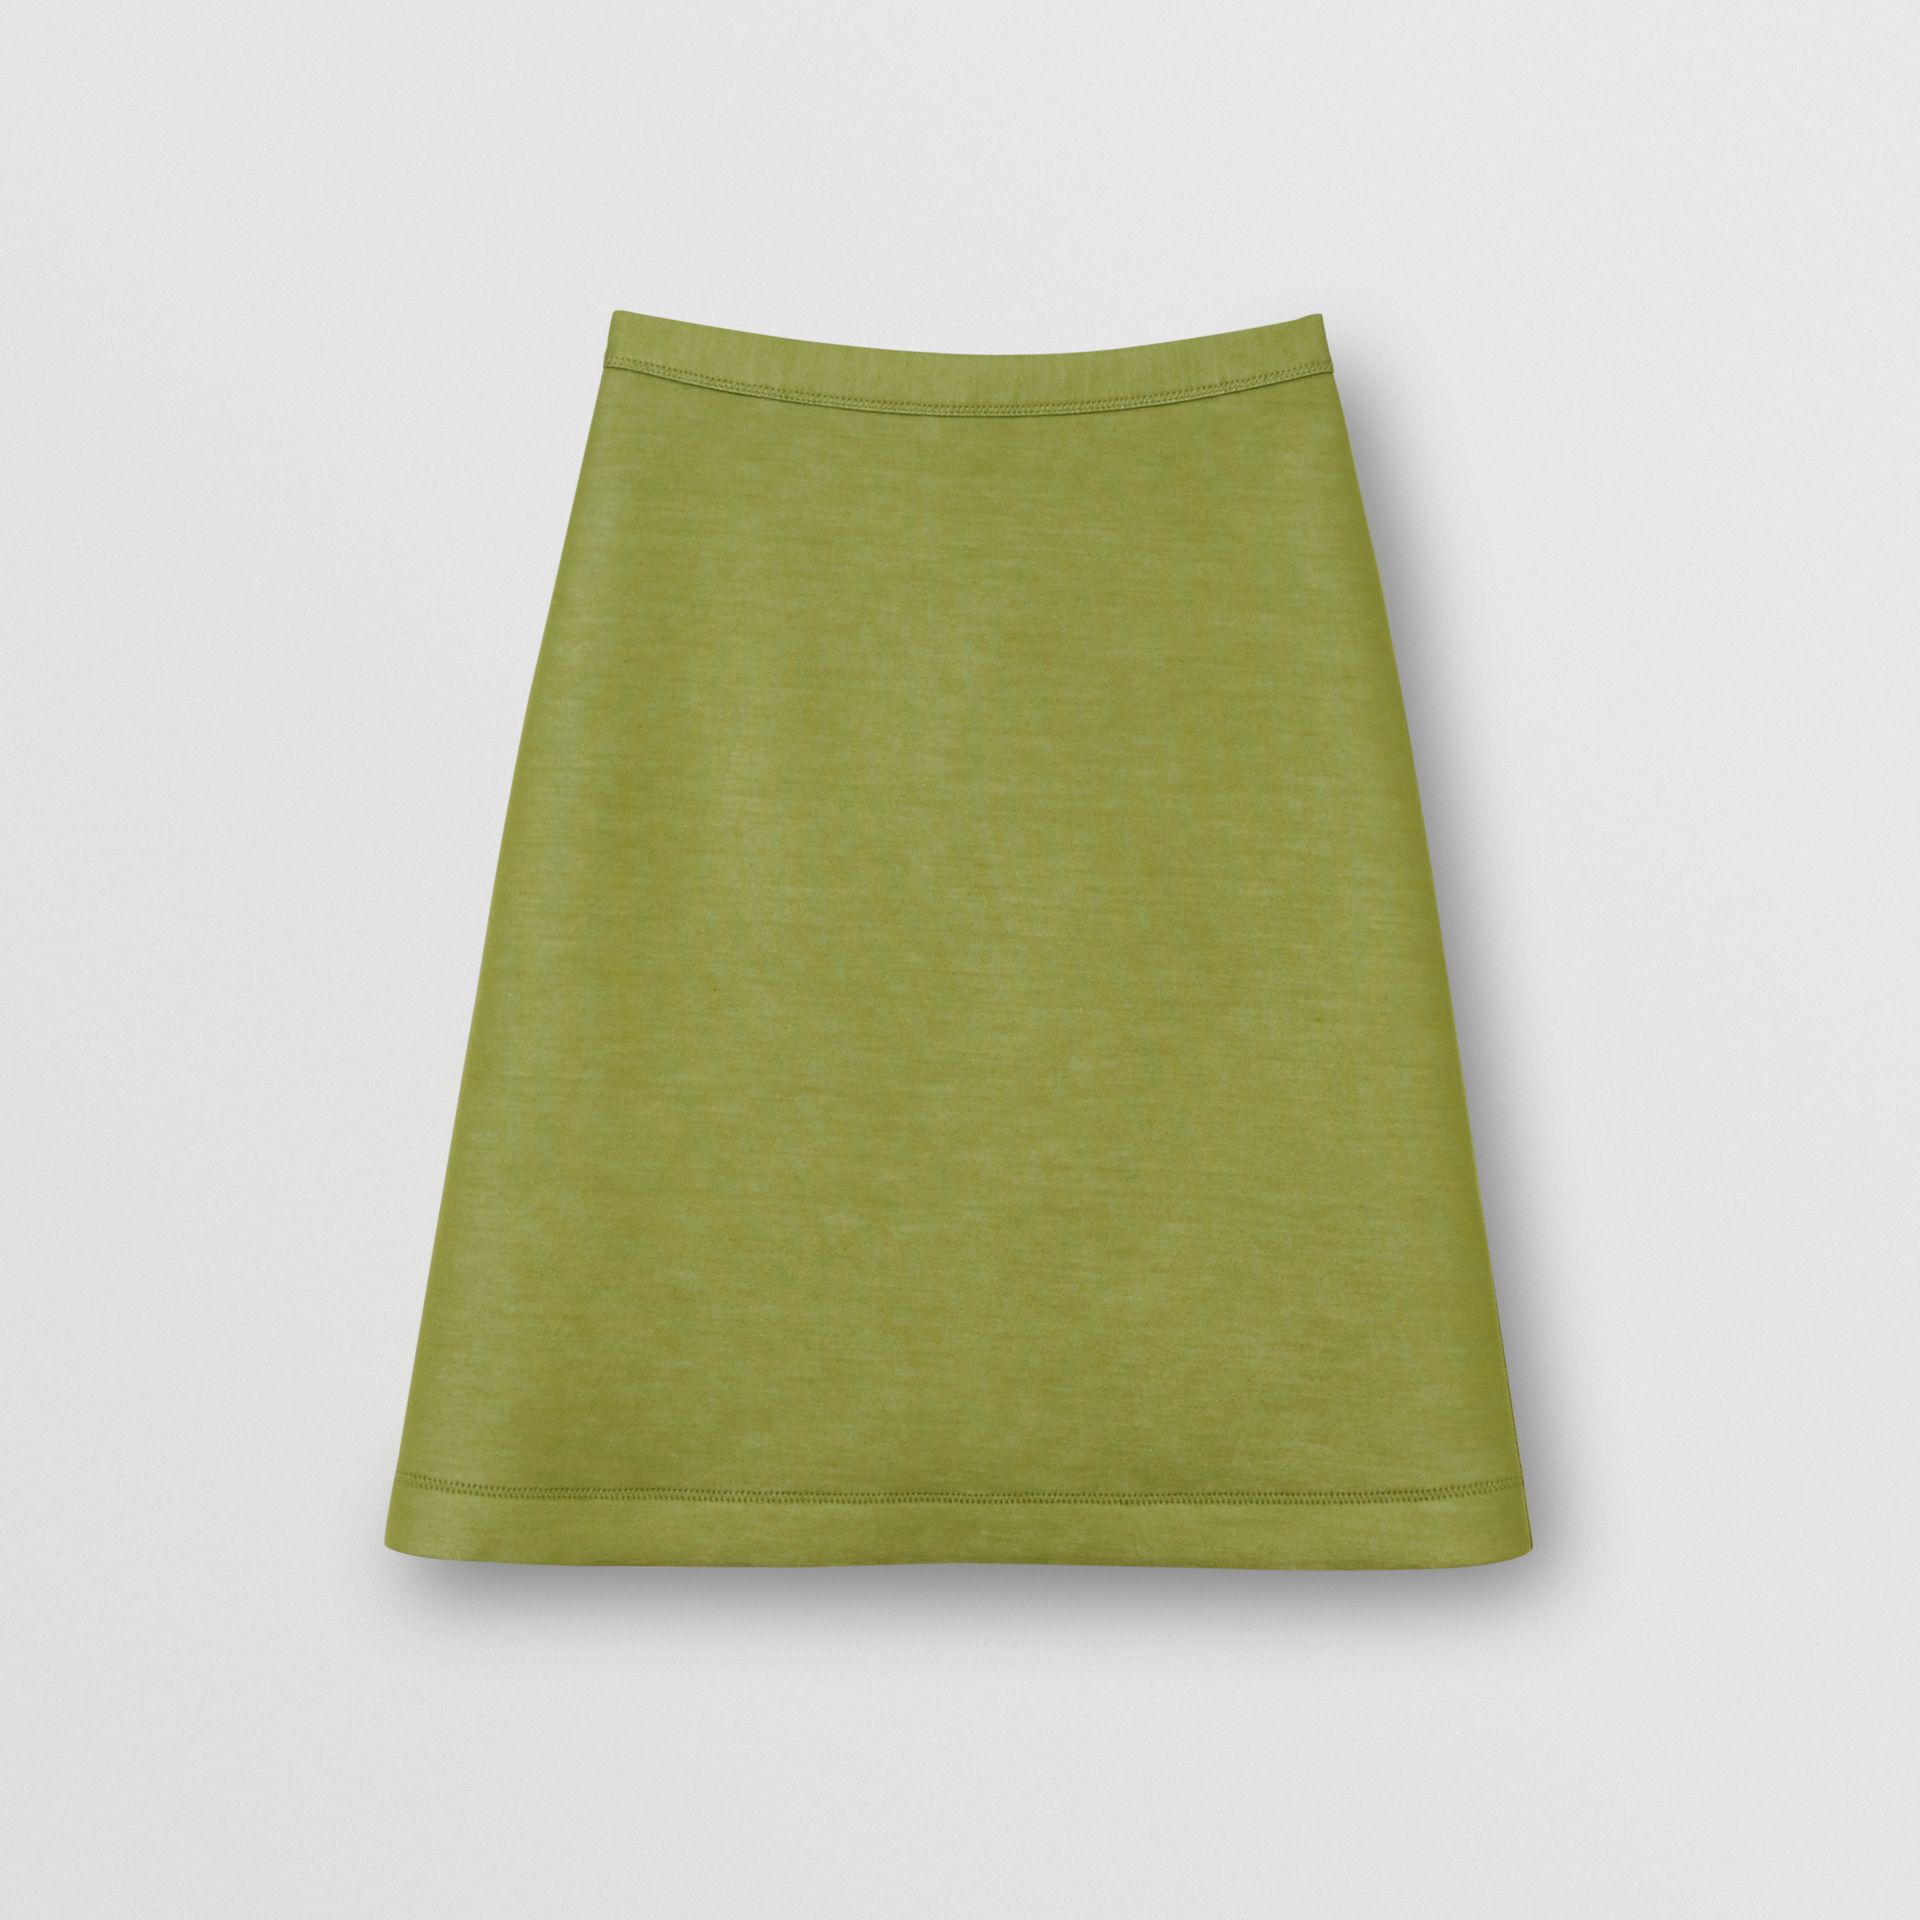 Double-faced Neoprene Skirt in Cedar Green - Women | Burberry United Kingdom - gallery image 3